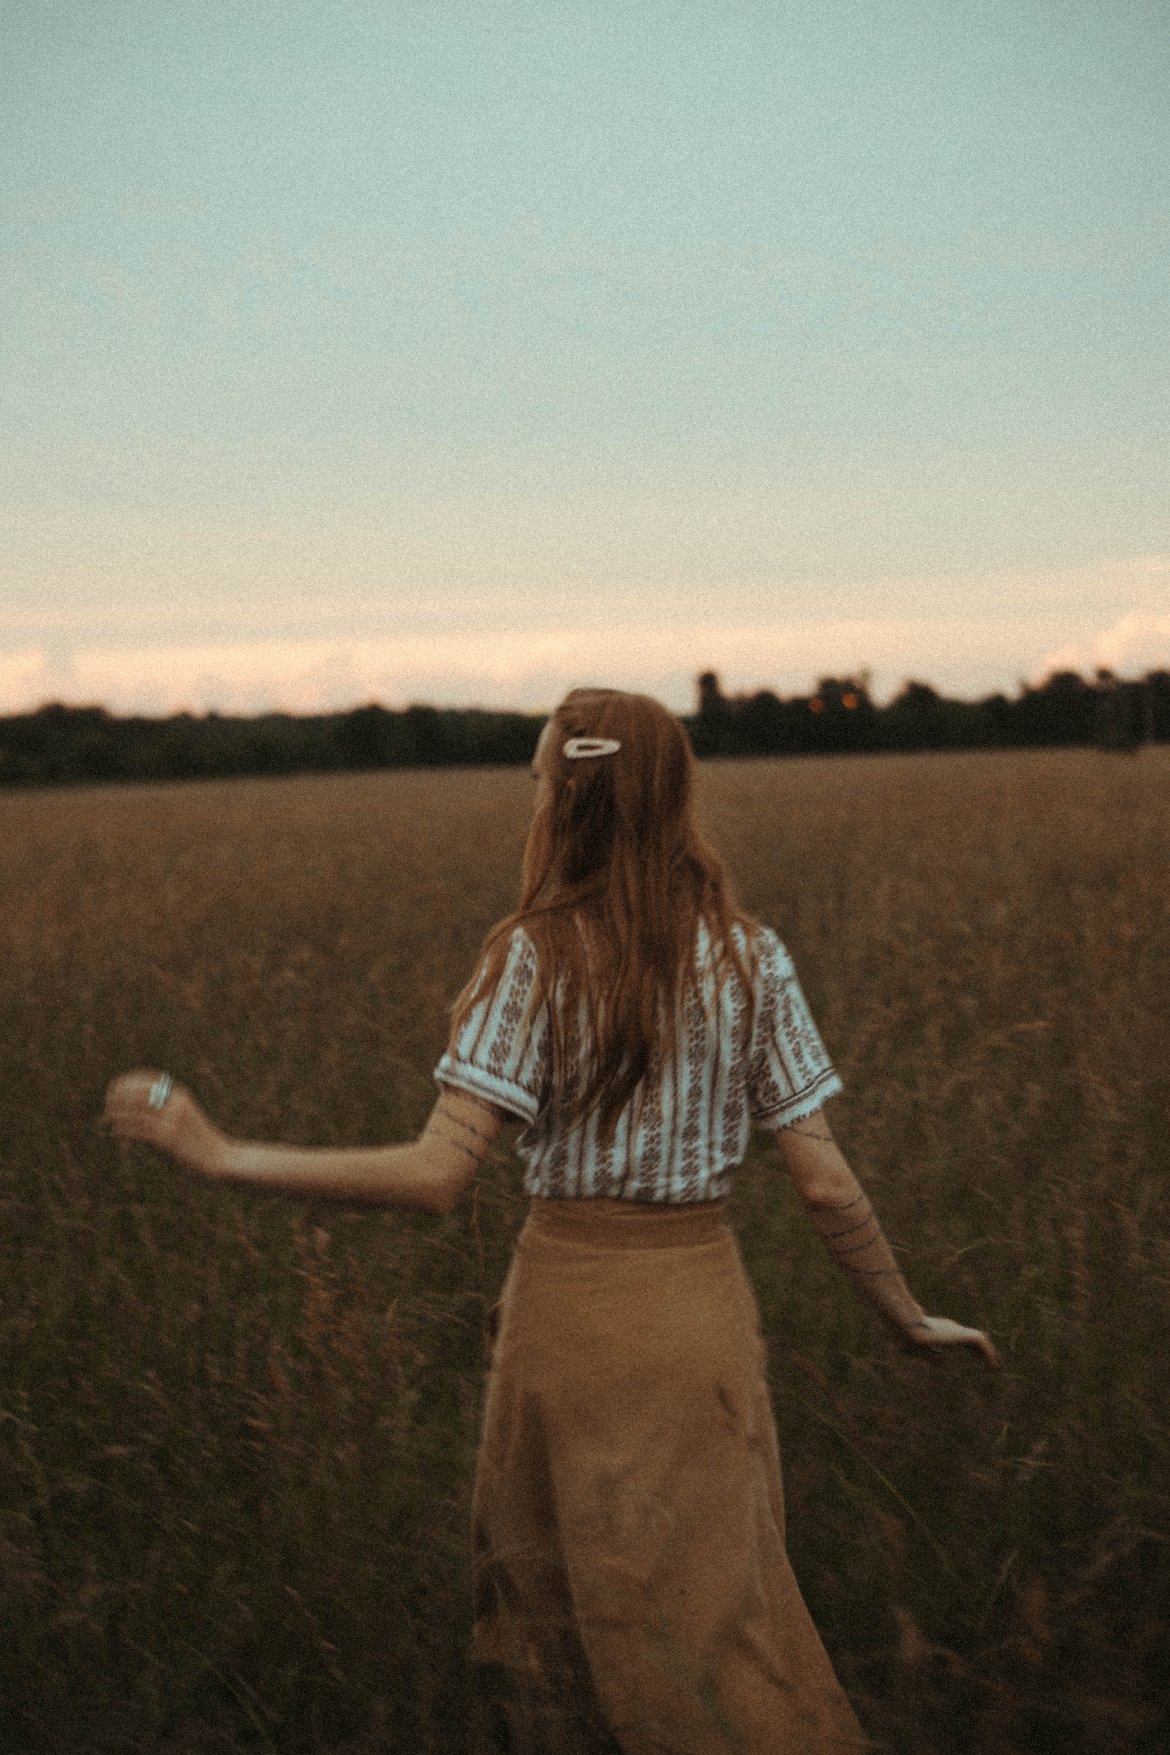 red head girl running in a field sunset moody creative photography